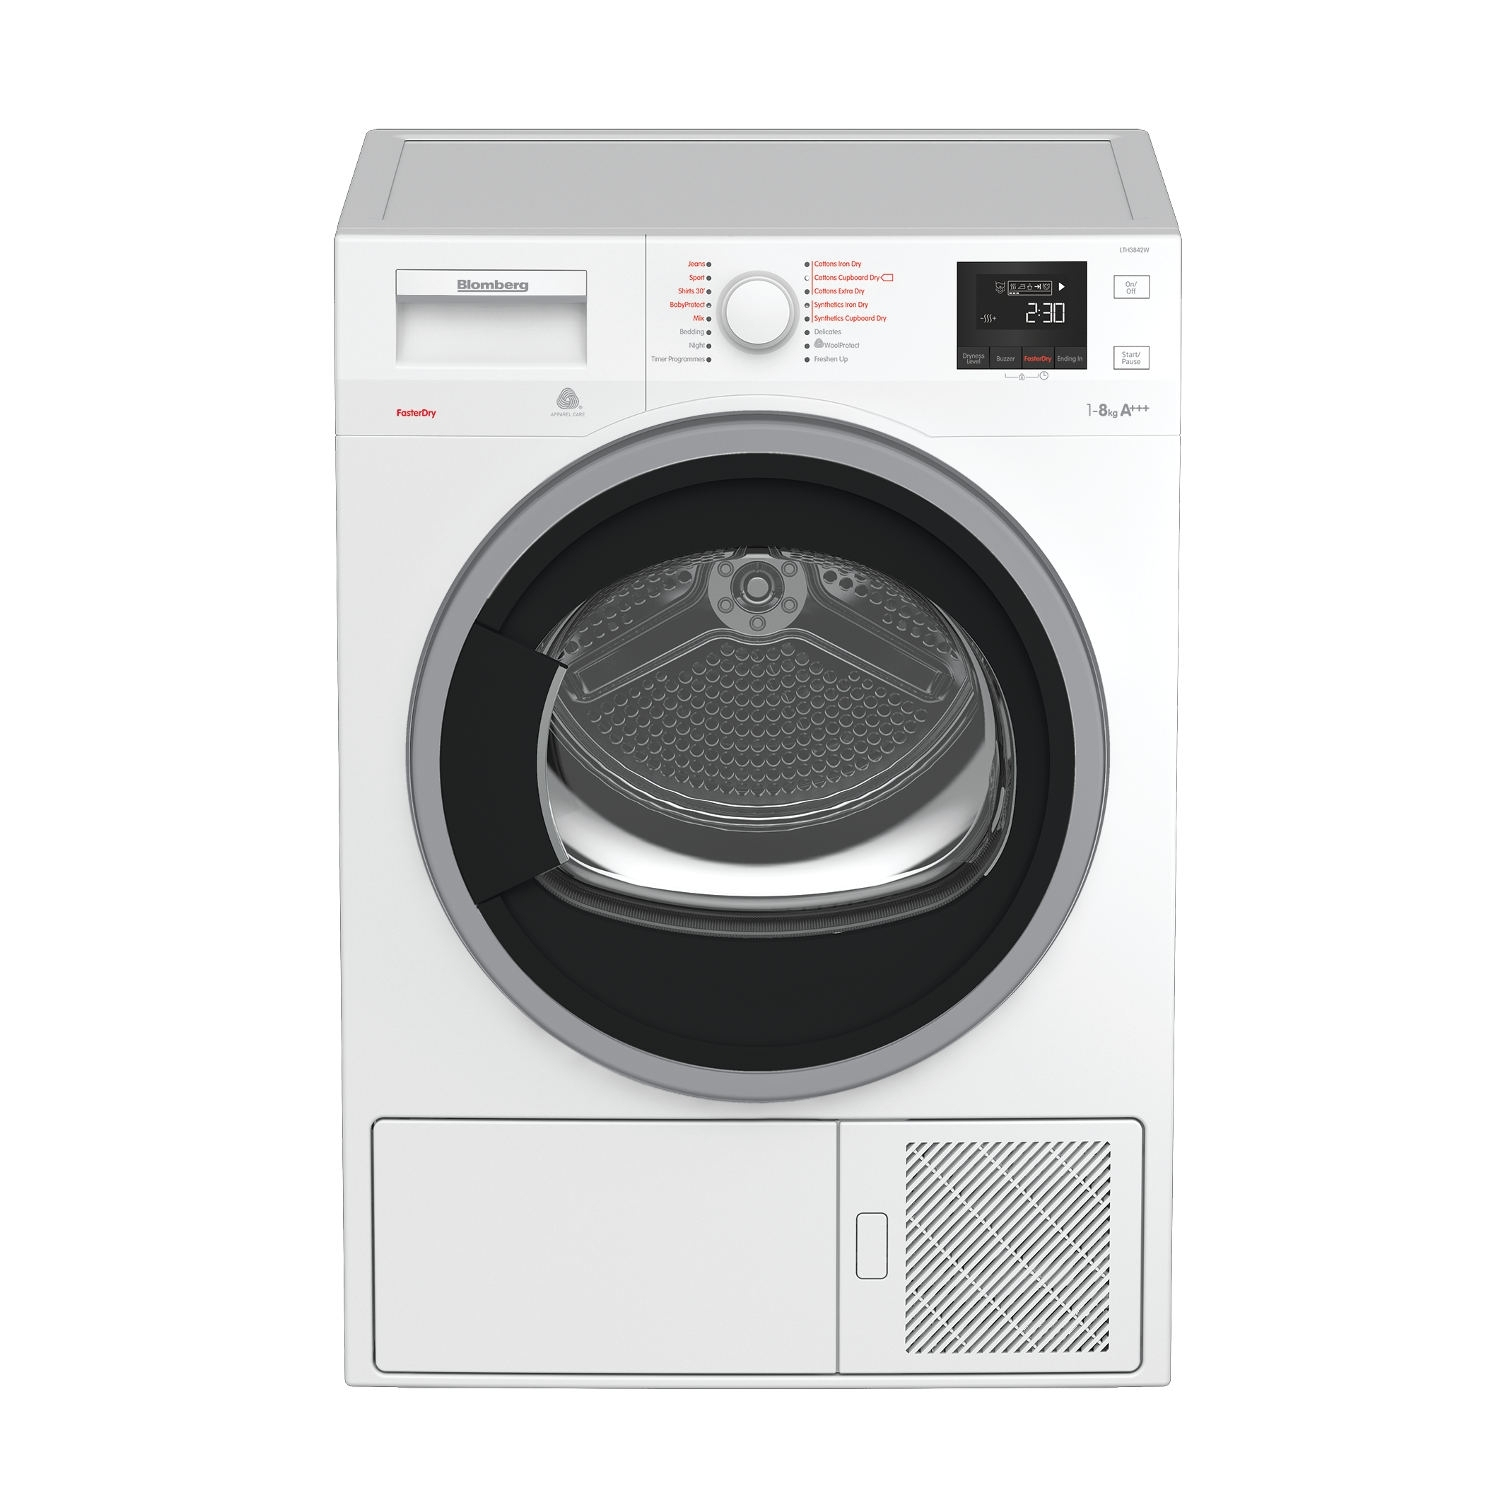 Blomberg LTH3842W 8kg Heat Pump Tumble Dryer - White - 5